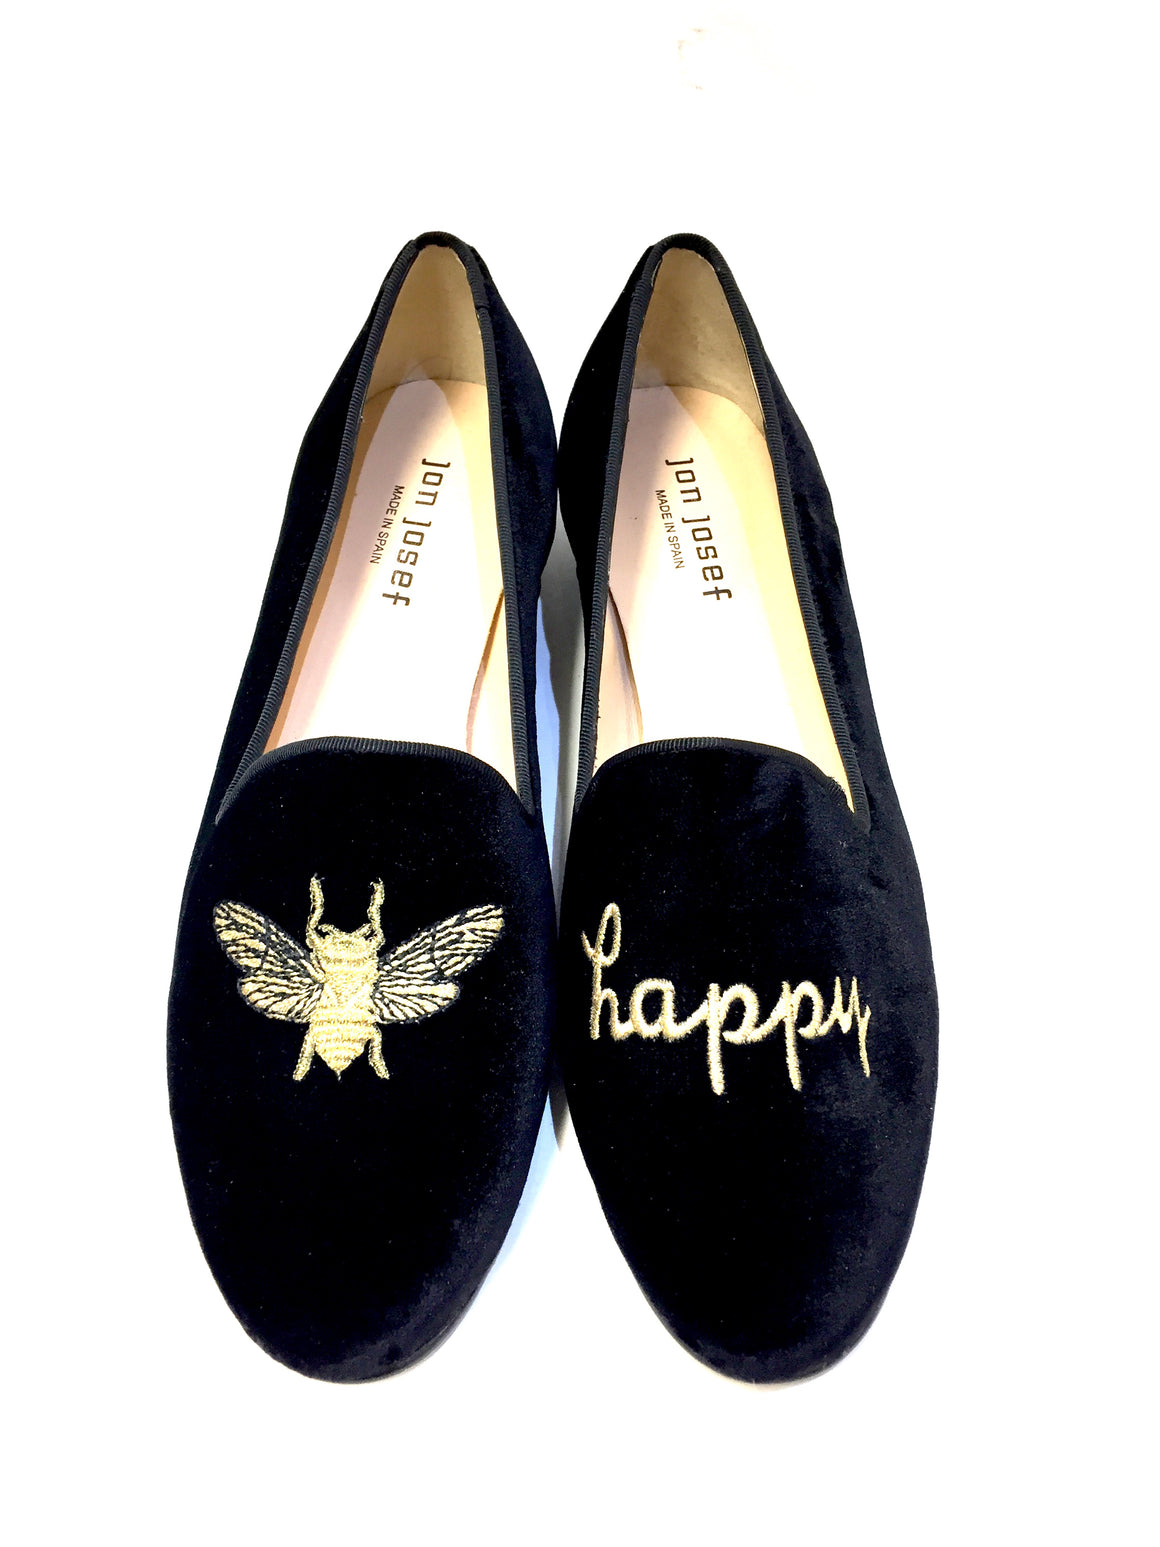 JON JOSEF  New  Black Velvet BEE HAPPY Gold Embroidered Smoking Slipper Flats Shoes  Size: 8M